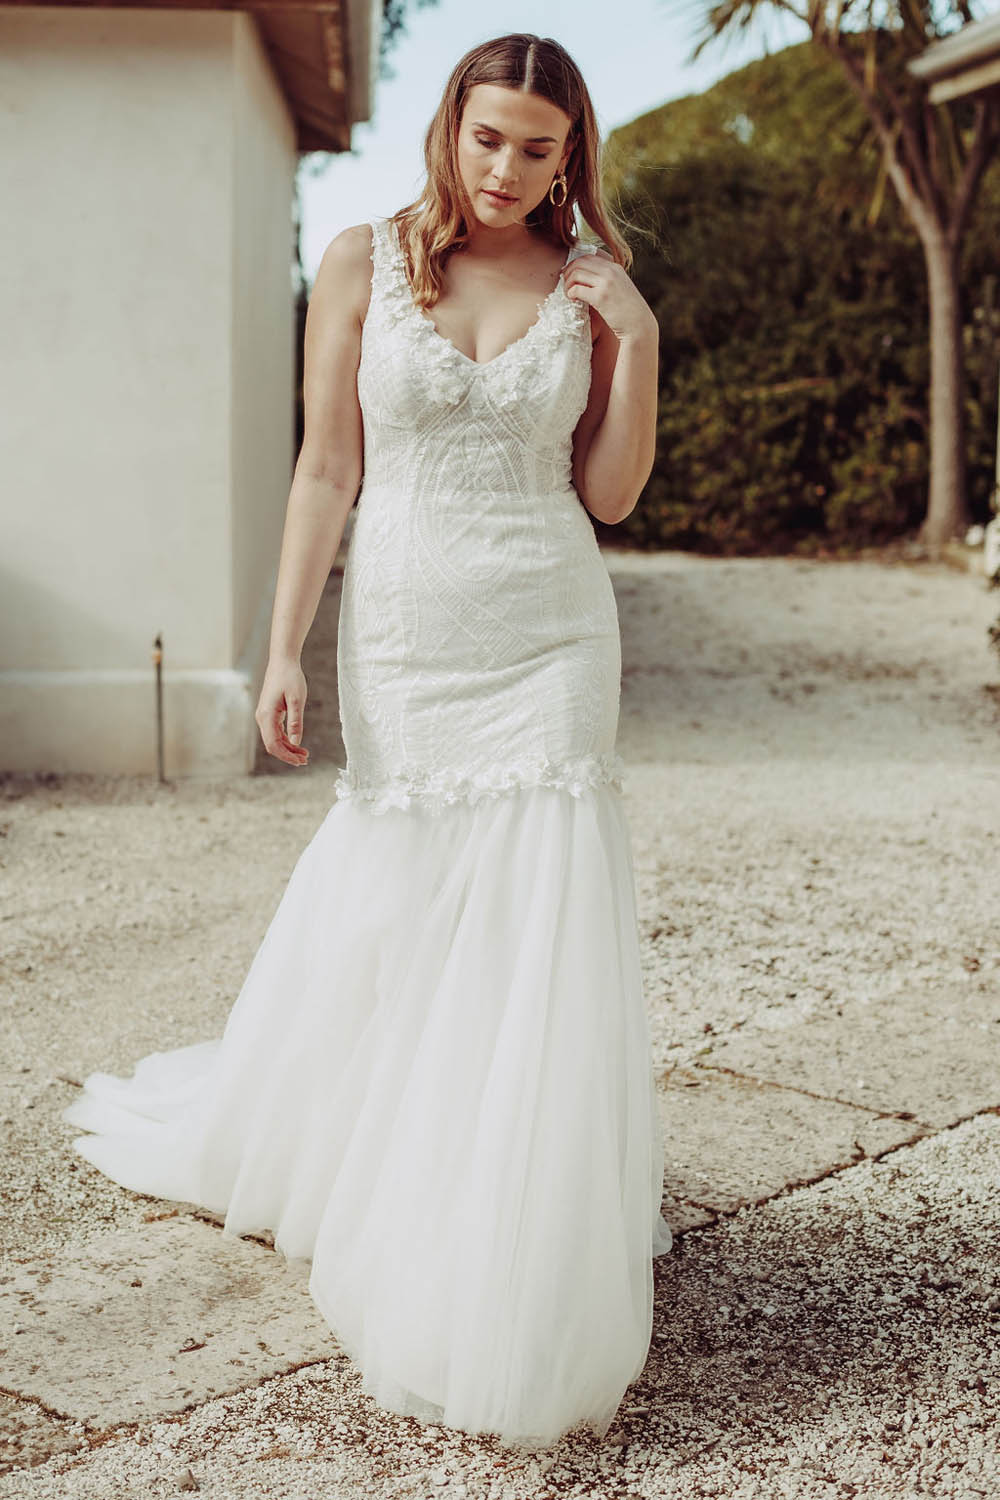 lainee Hermsen Bridal - Wedding dress